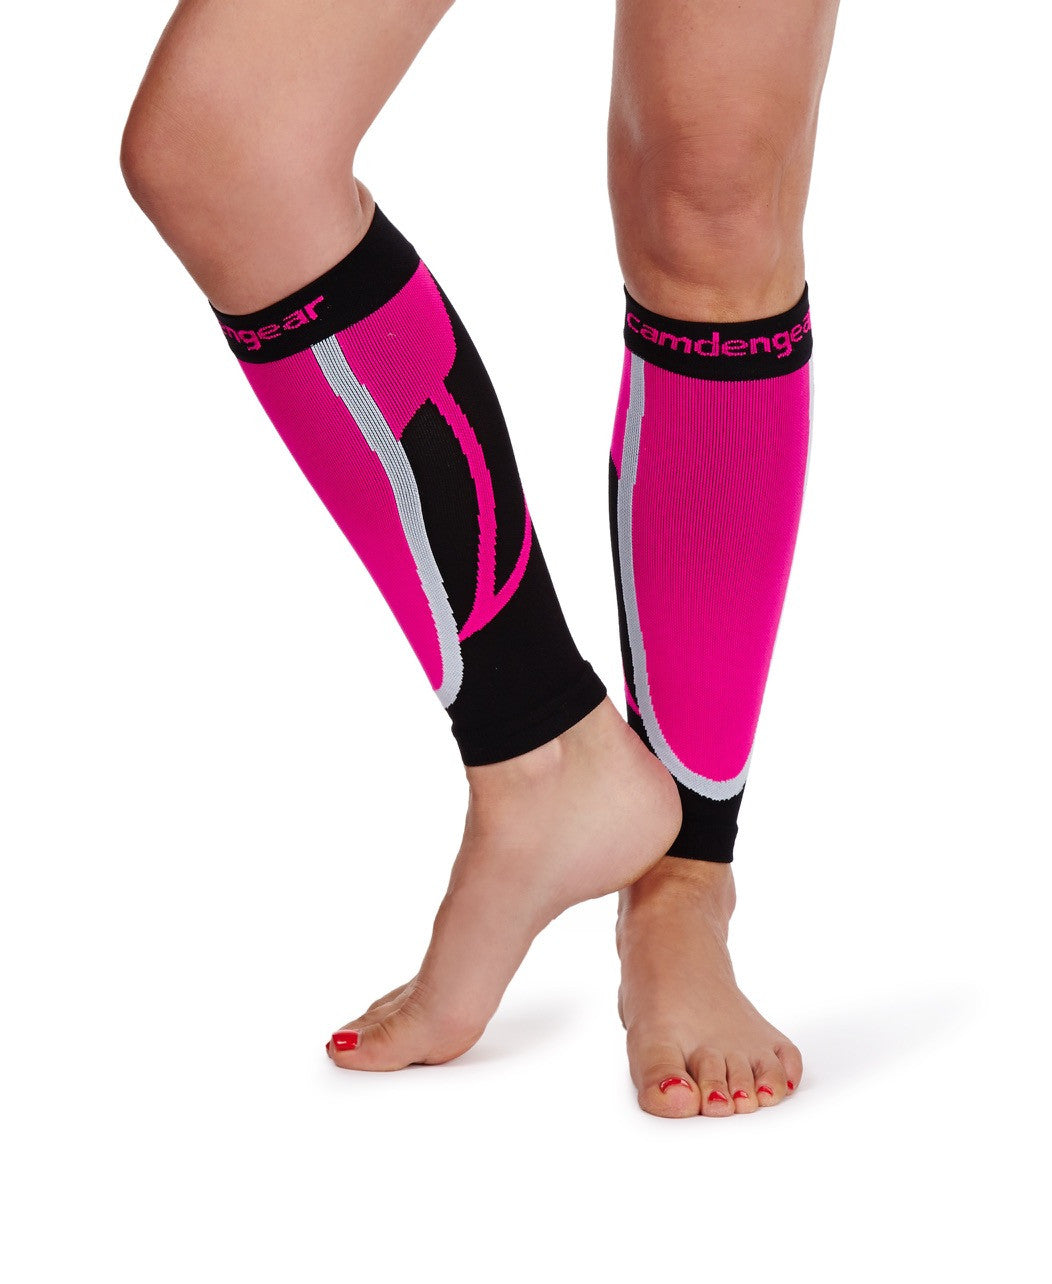 Calf Compression Sleeve - Pink